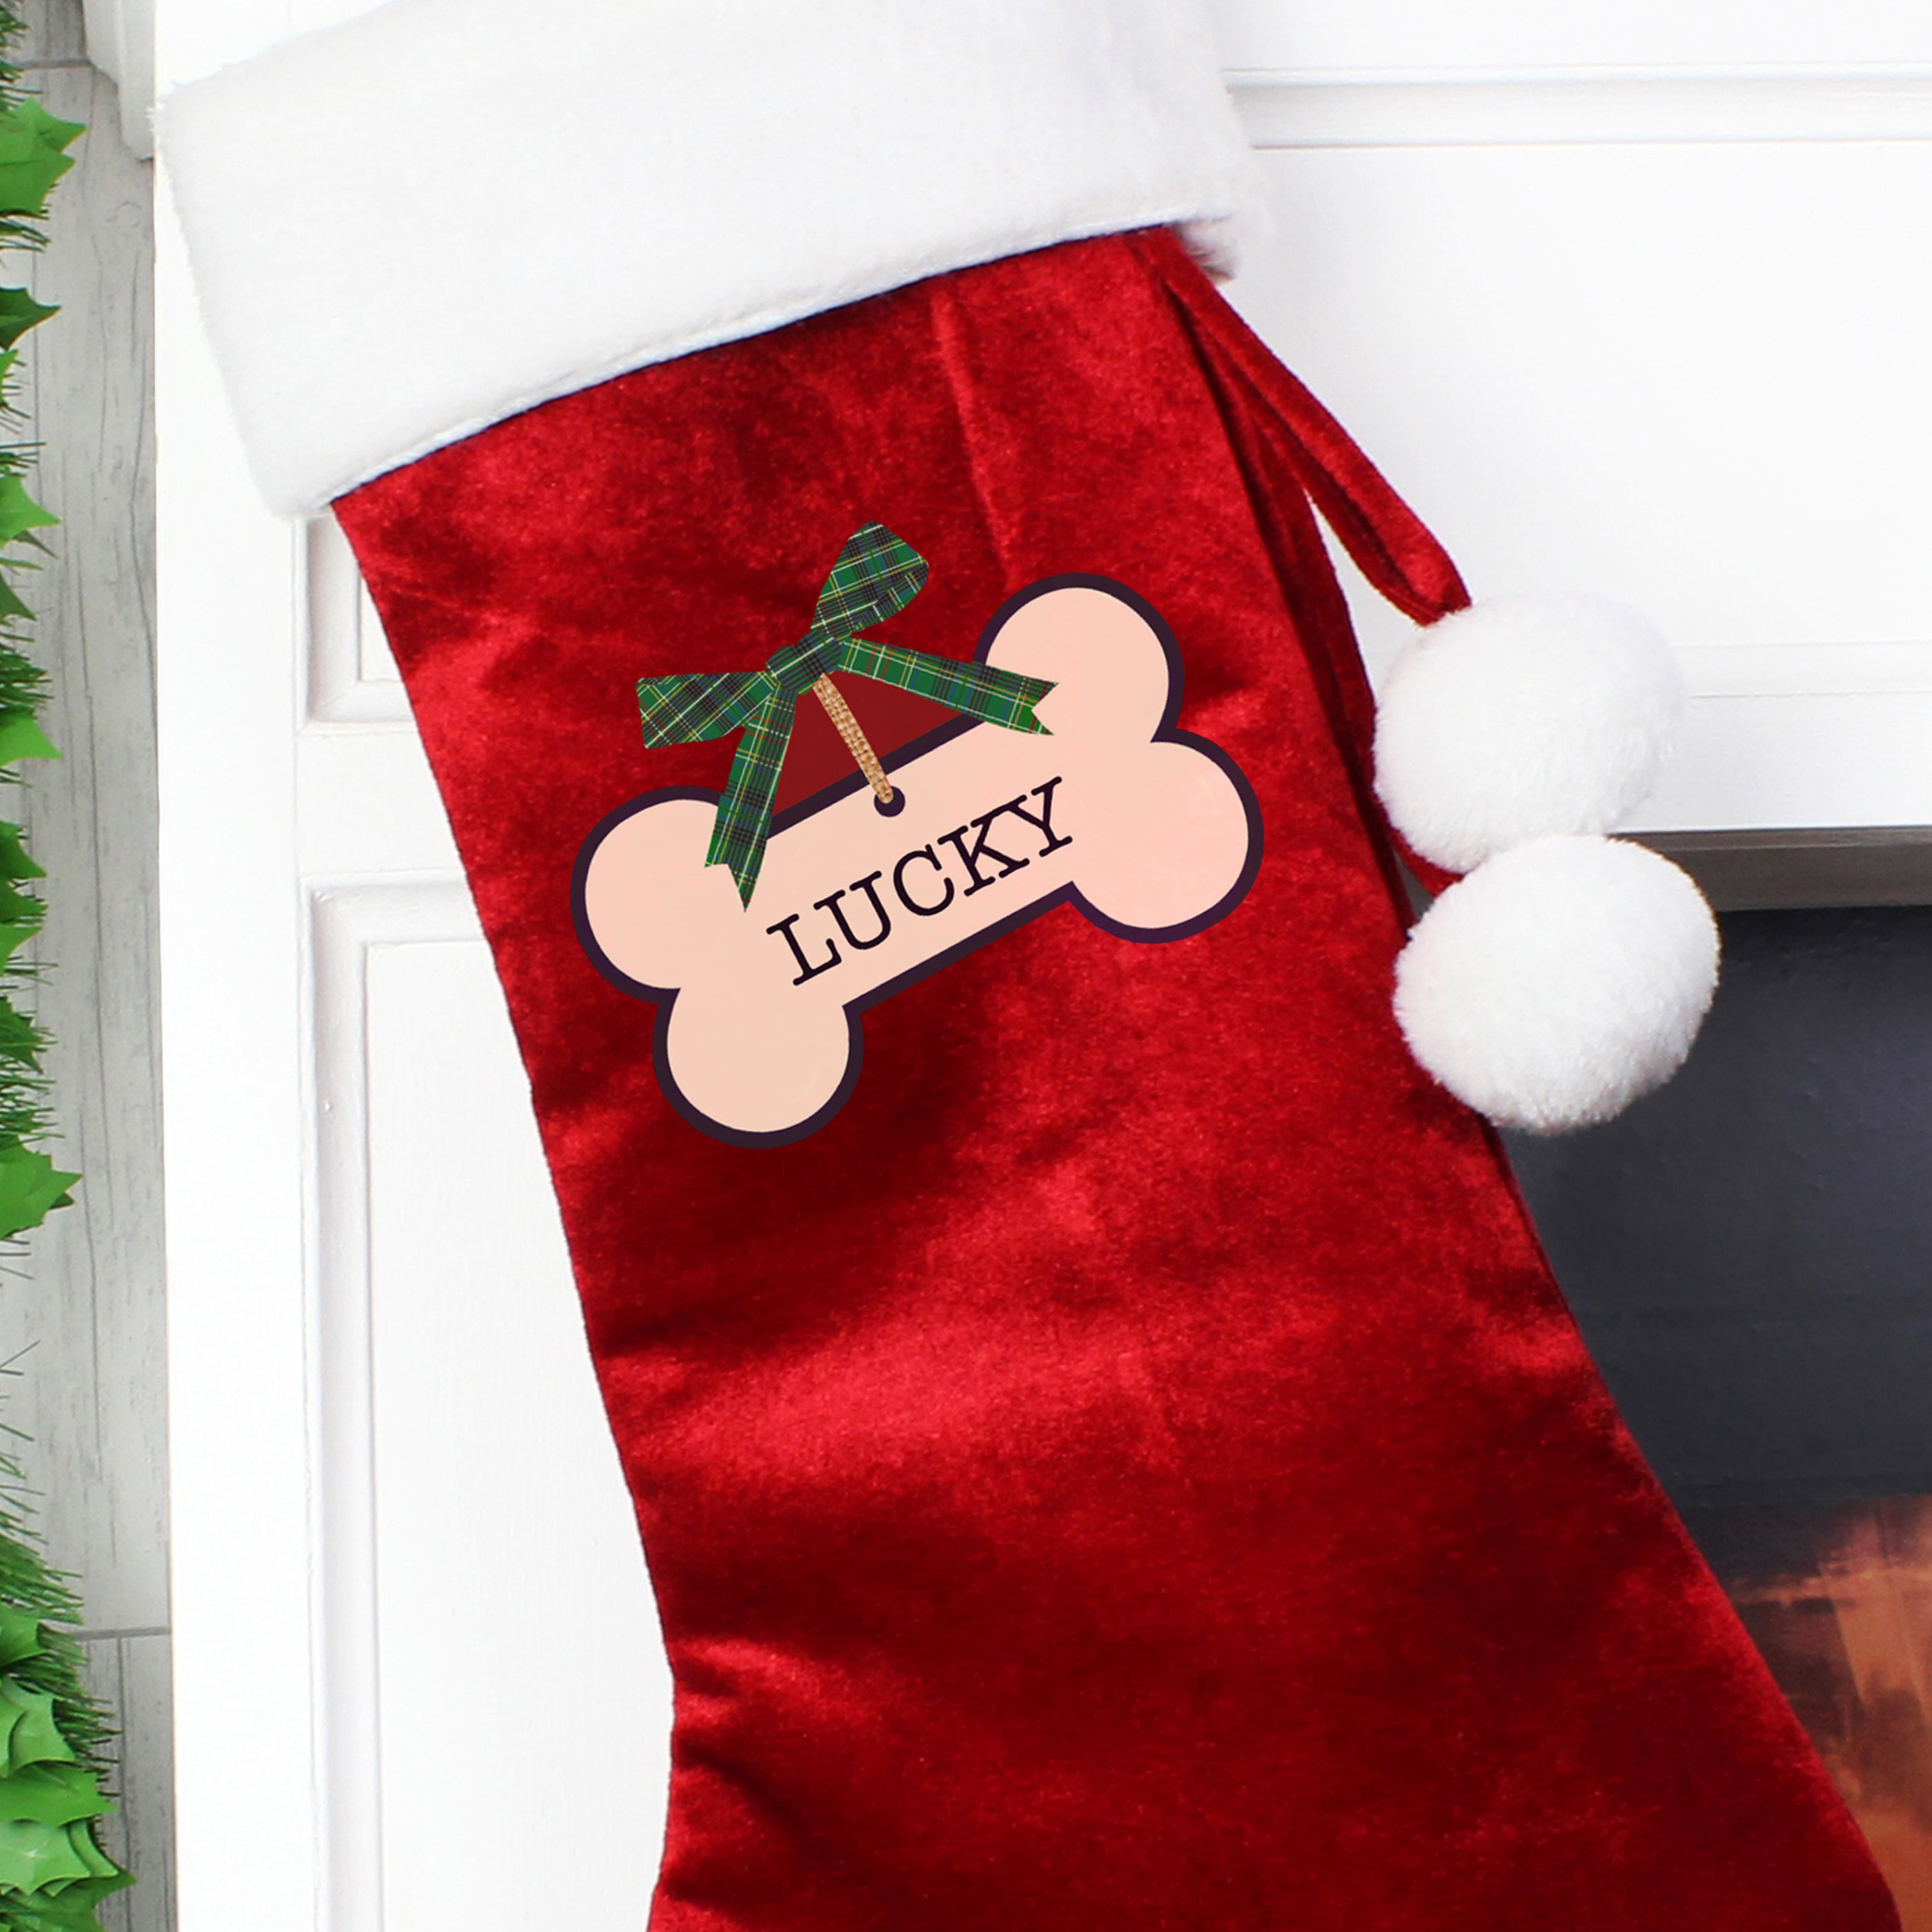 Image of a personalised red velvet Christmas stocking with a bone design for a dog